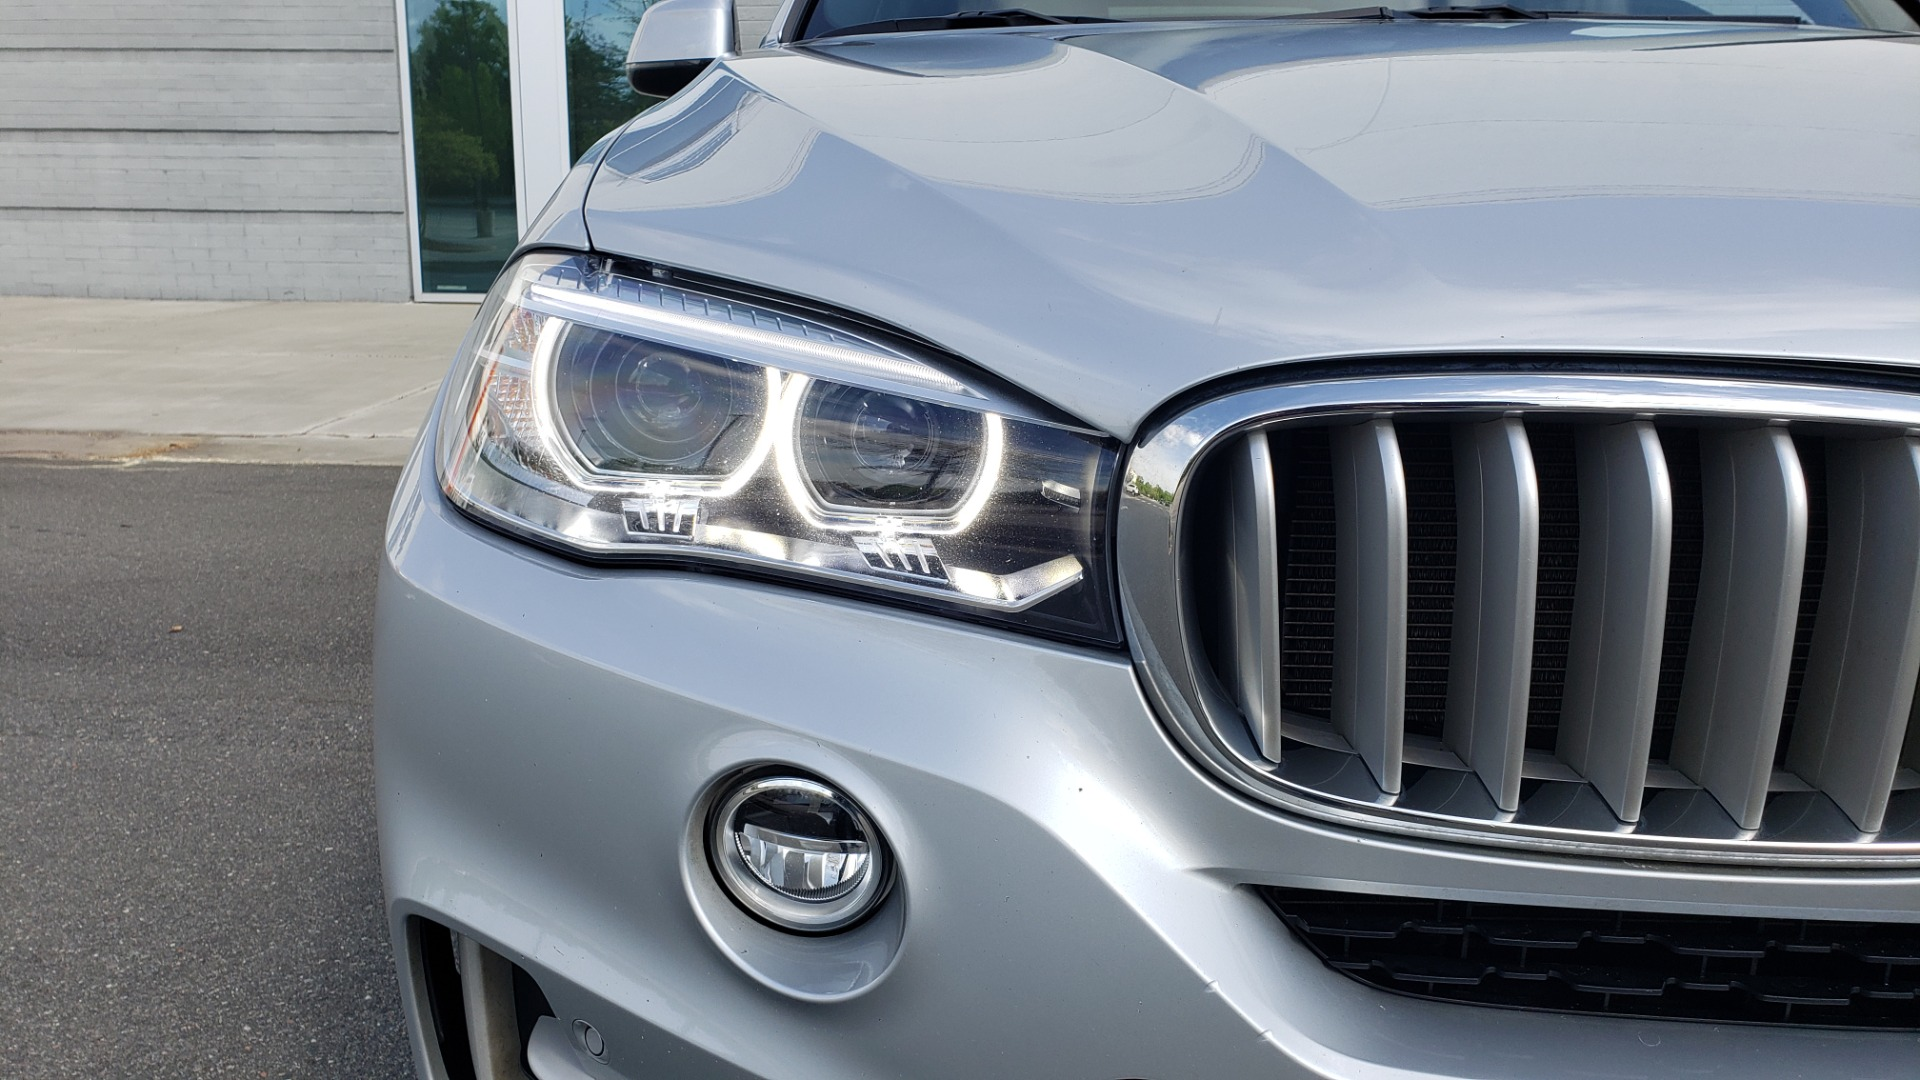 Used 2018 BMW X5 XDRIVE35I PREMIUM / NAV / PANO-ROOF / DRIVER ASST / REARVIEW for sale Sold at Formula Imports in Charlotte NC 28227 26